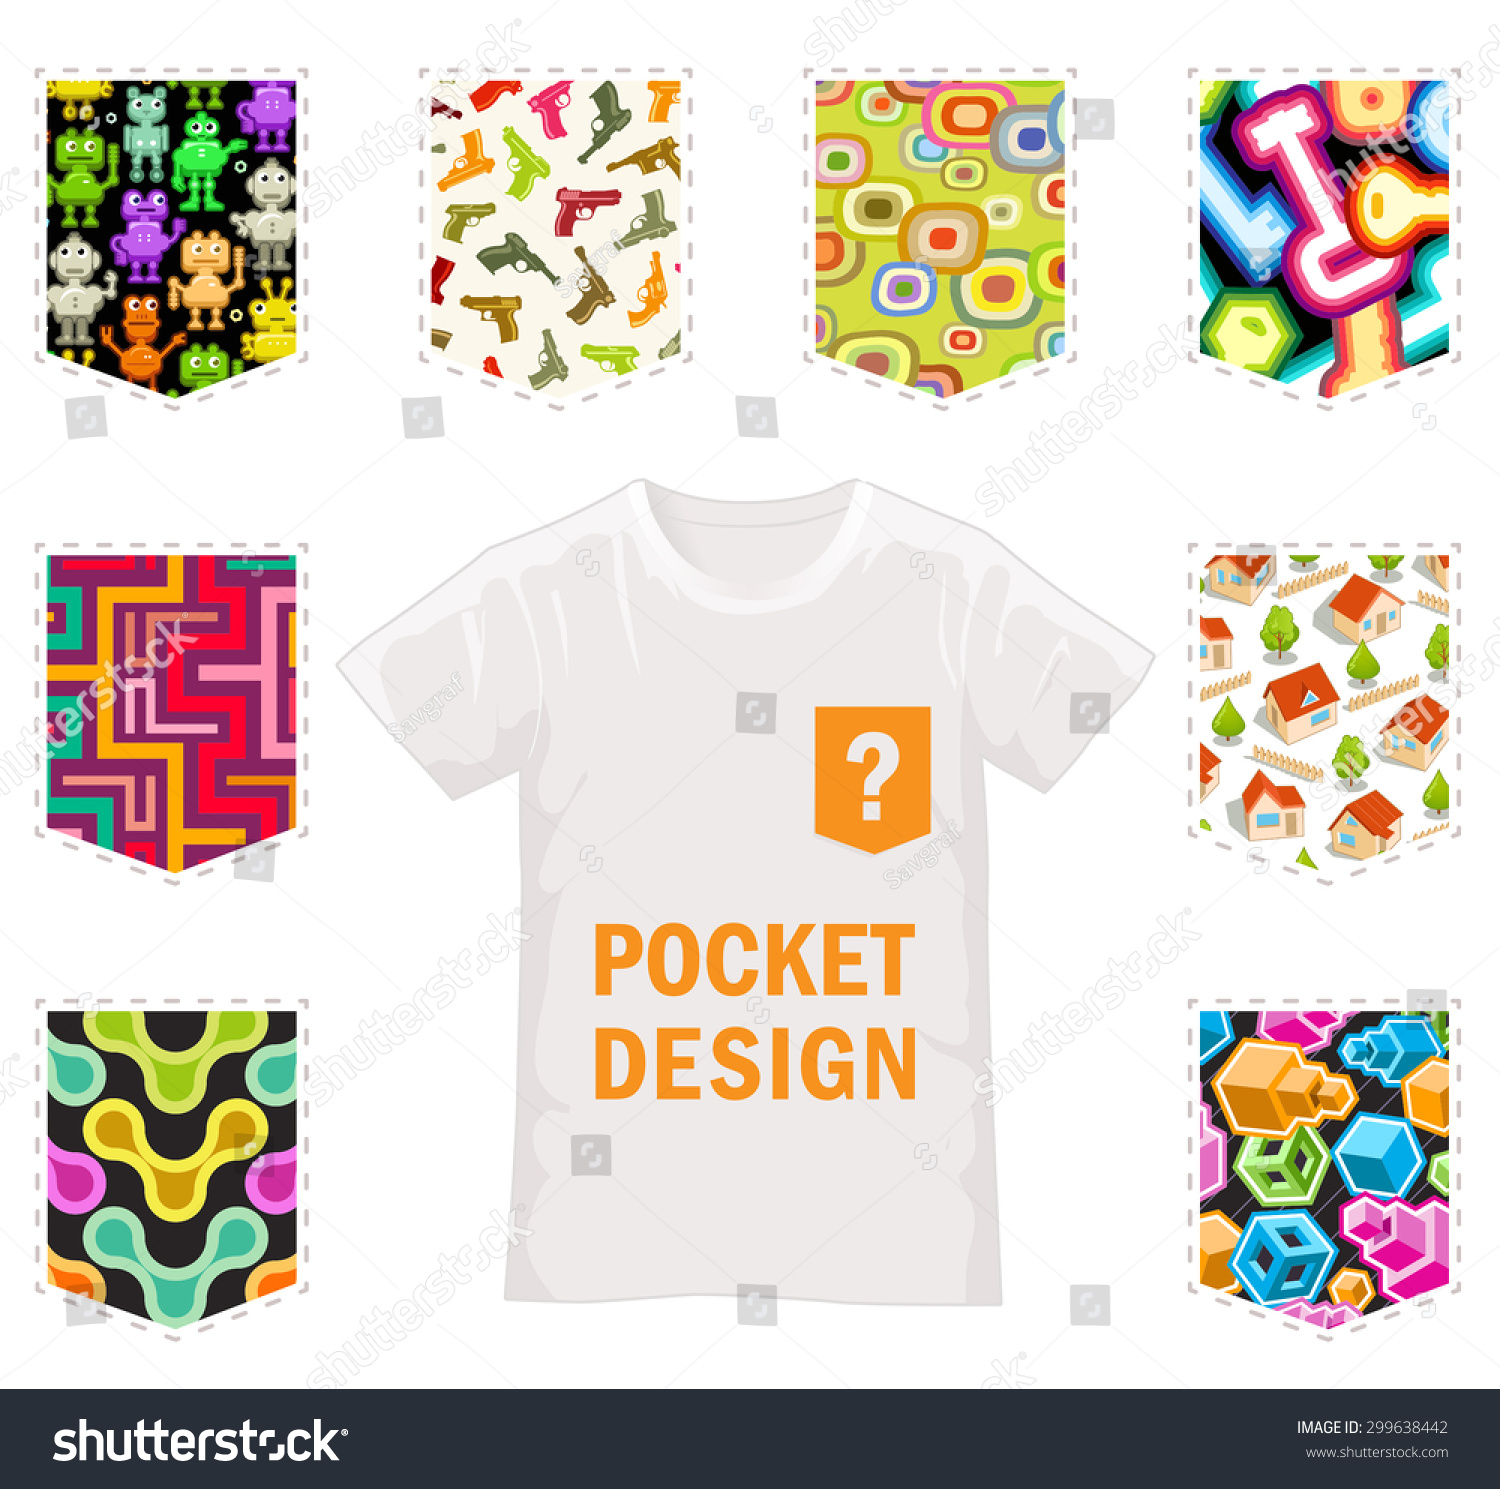 Design t shirt with pocket - Set Of Vector Samples For Pocket Design Isolated Textures For T Shirt Design